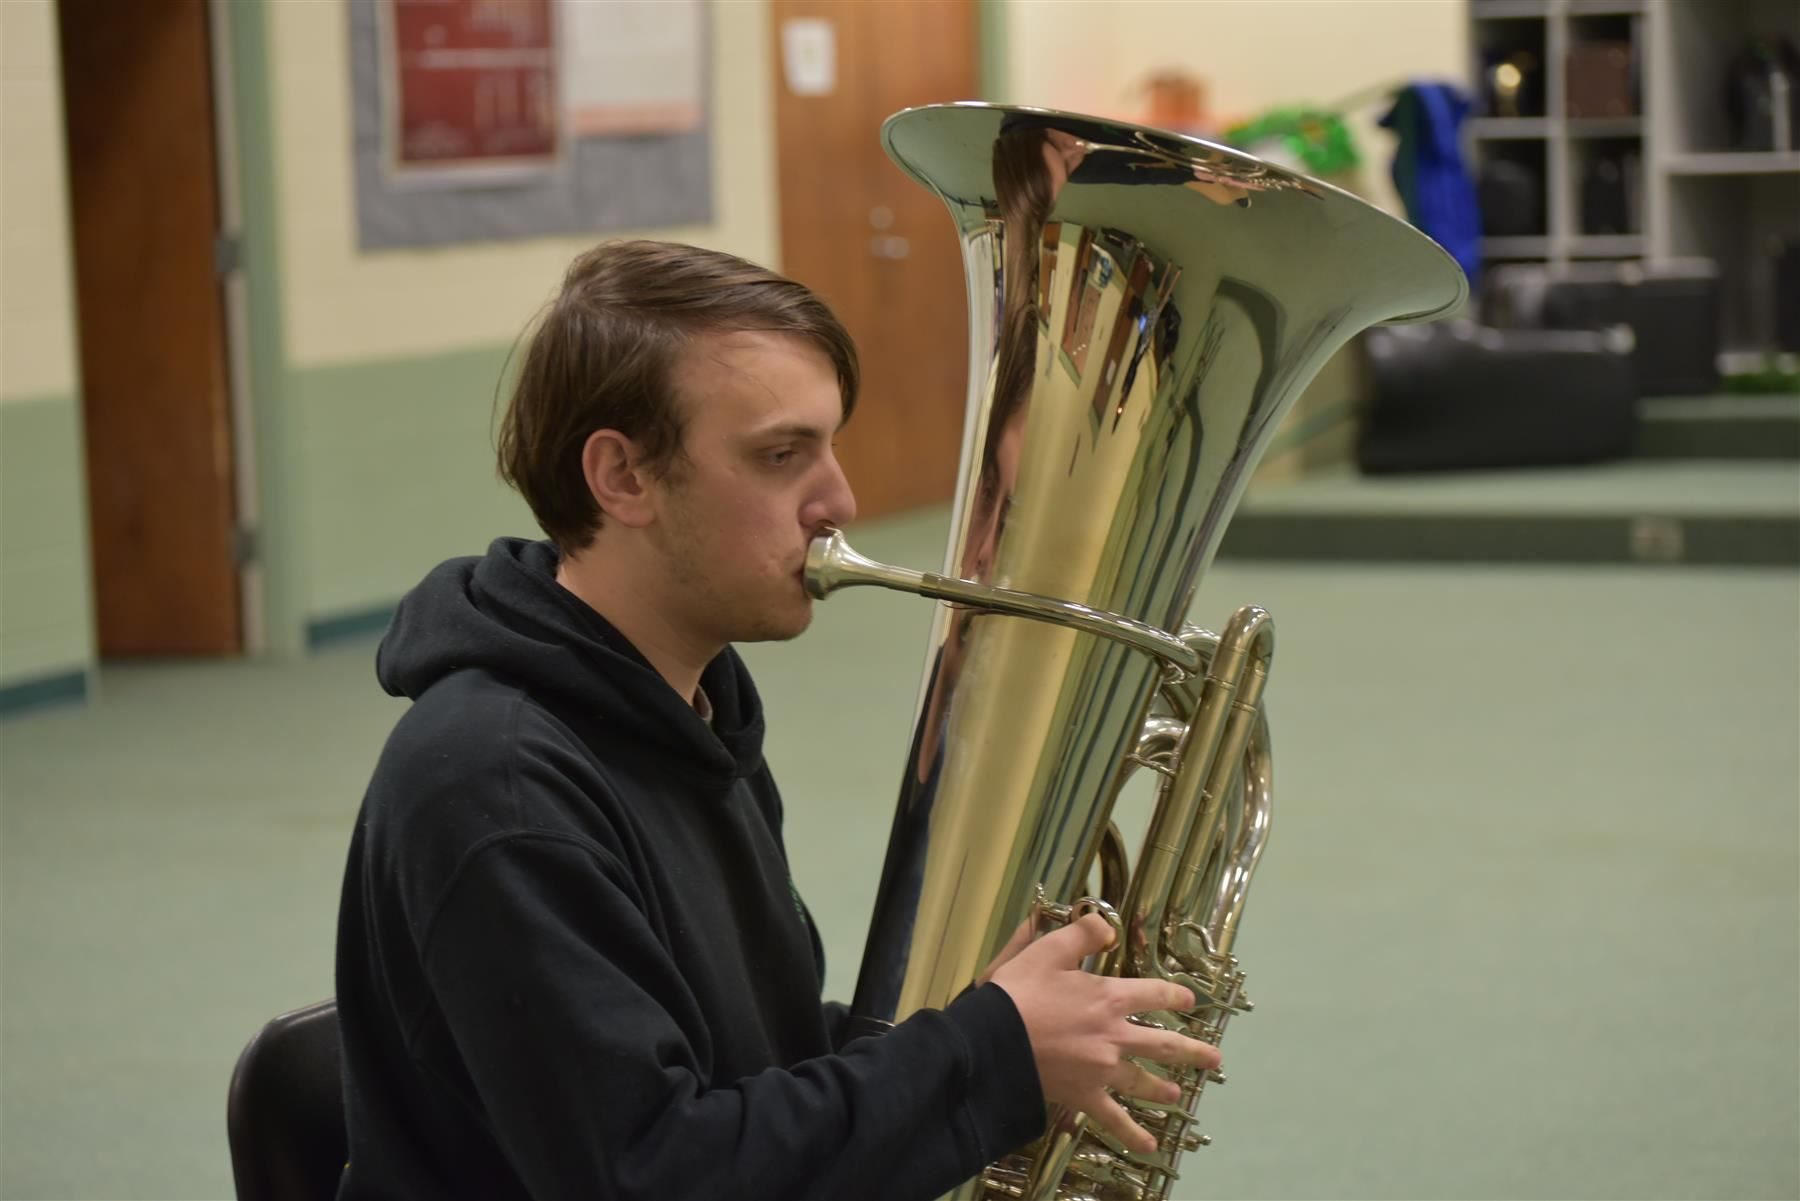 Student playing the Tuba.